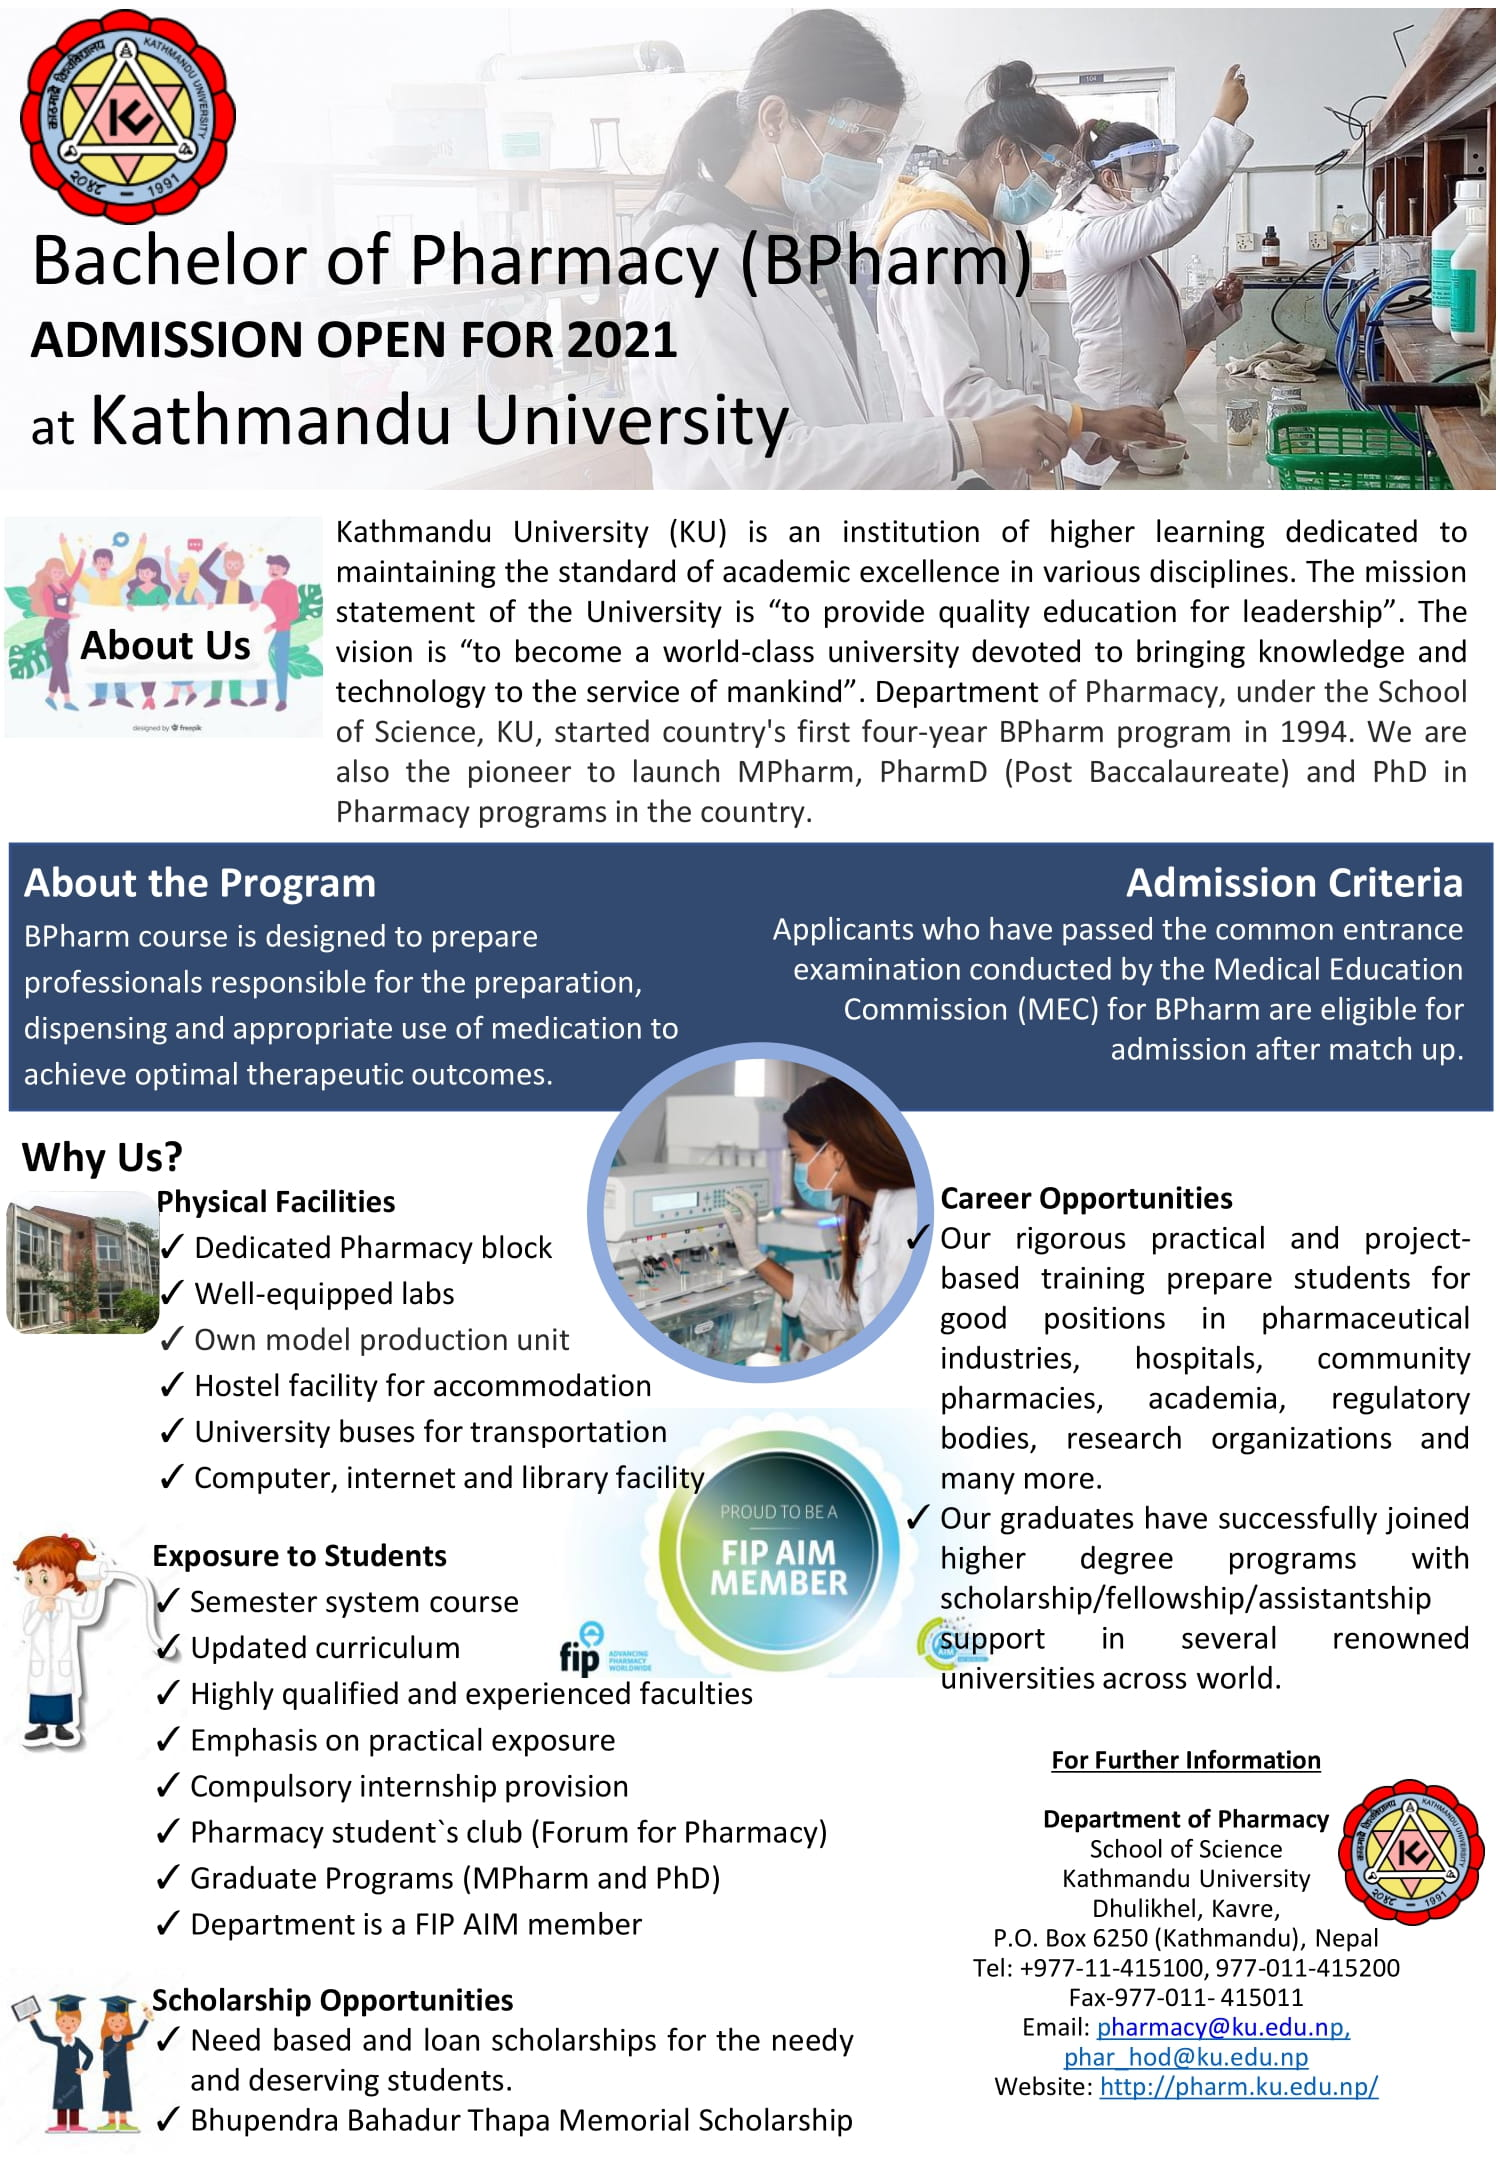 ADMISSION OPEN FOR 2021 Bachelor of Pharmacy (BPharm) at KUSOS